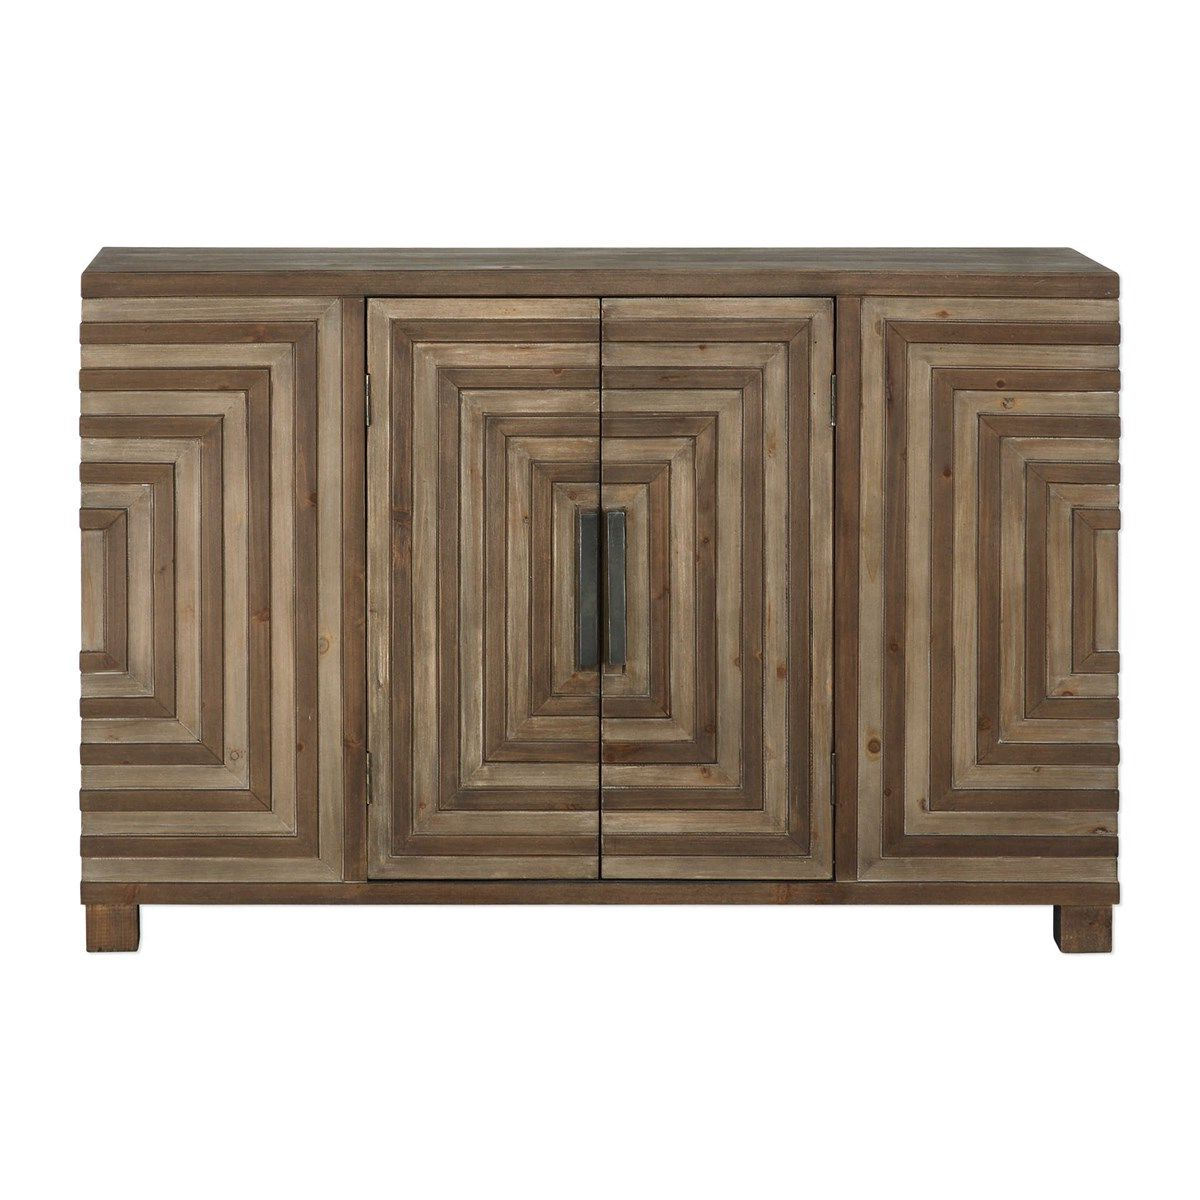 Uttermost Layton Geometric Console Cabinet | Graverson Ideas Regarding Blue Hexagons And Diamonds Credenzas (View 20 of 20)